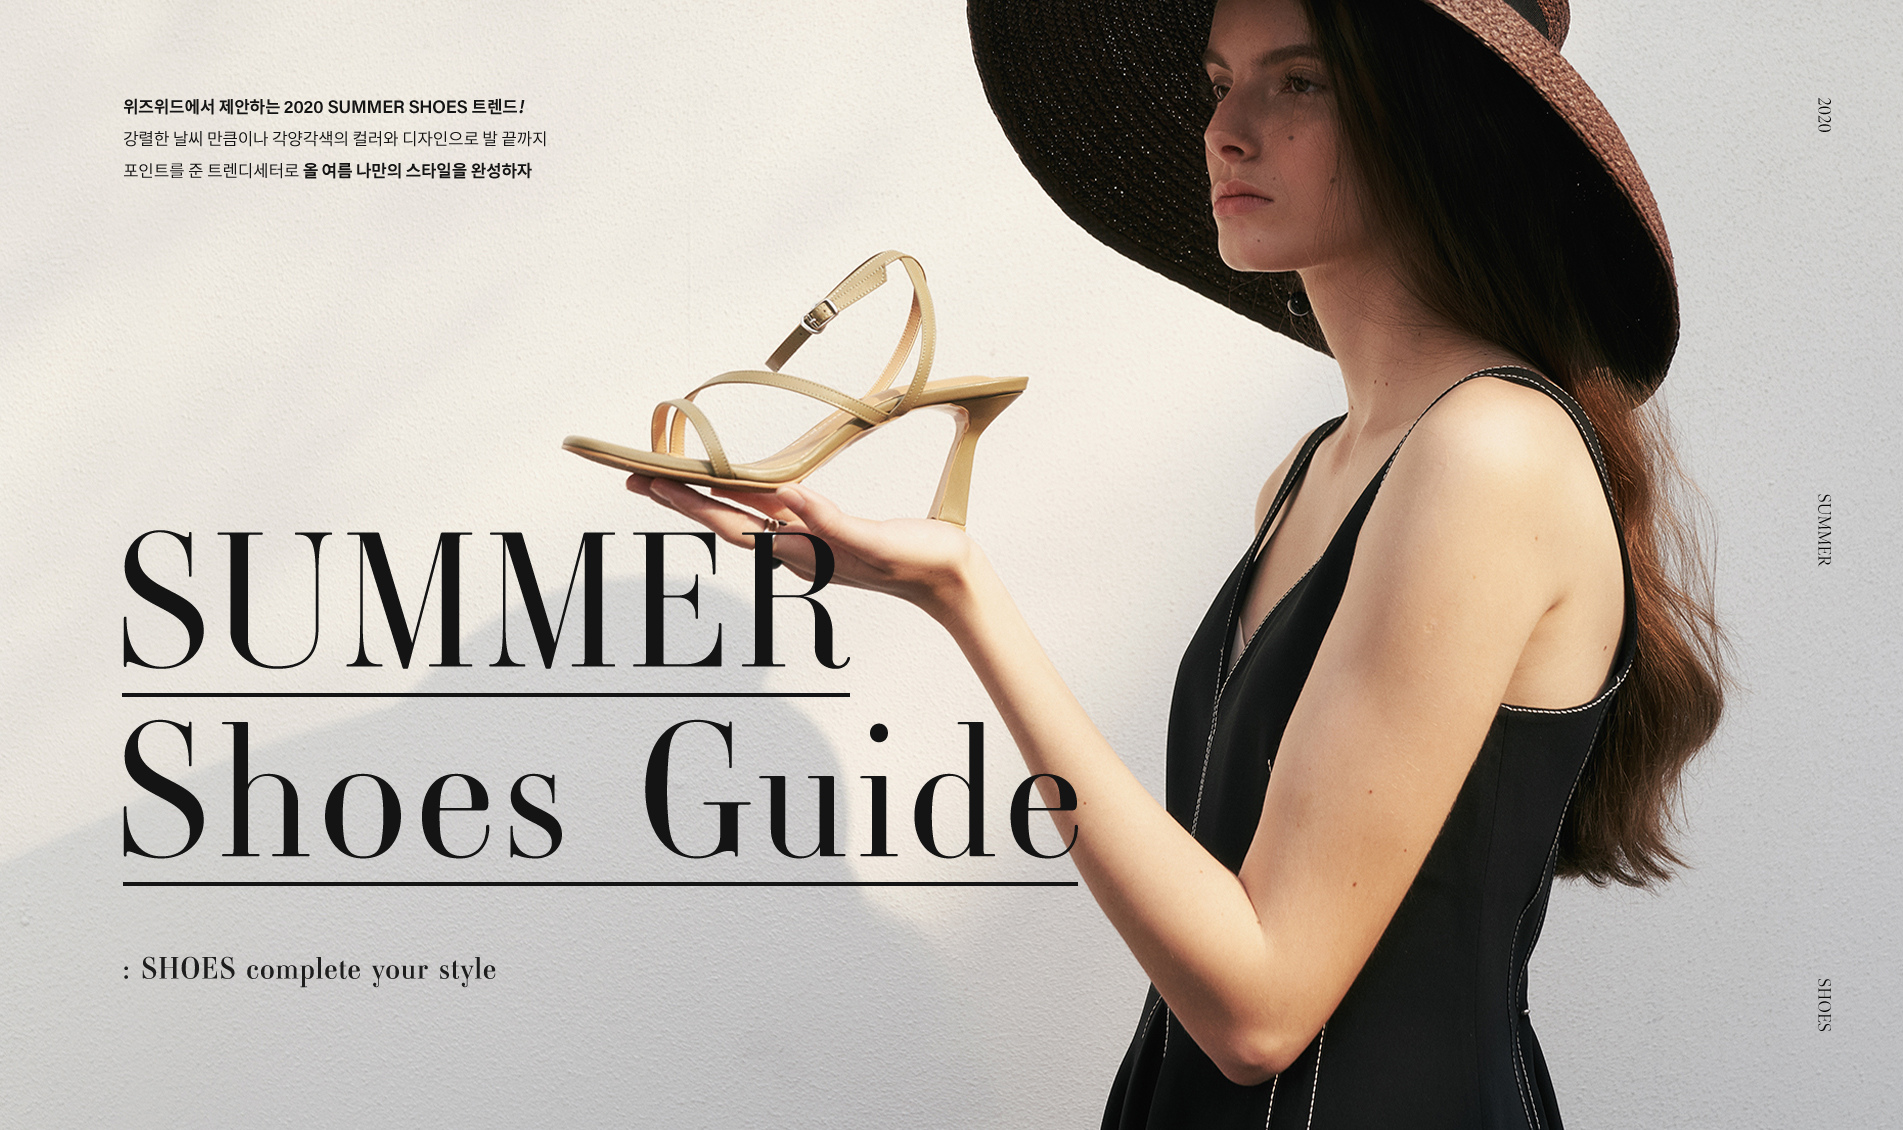 SUMMER SHOES GUIDE